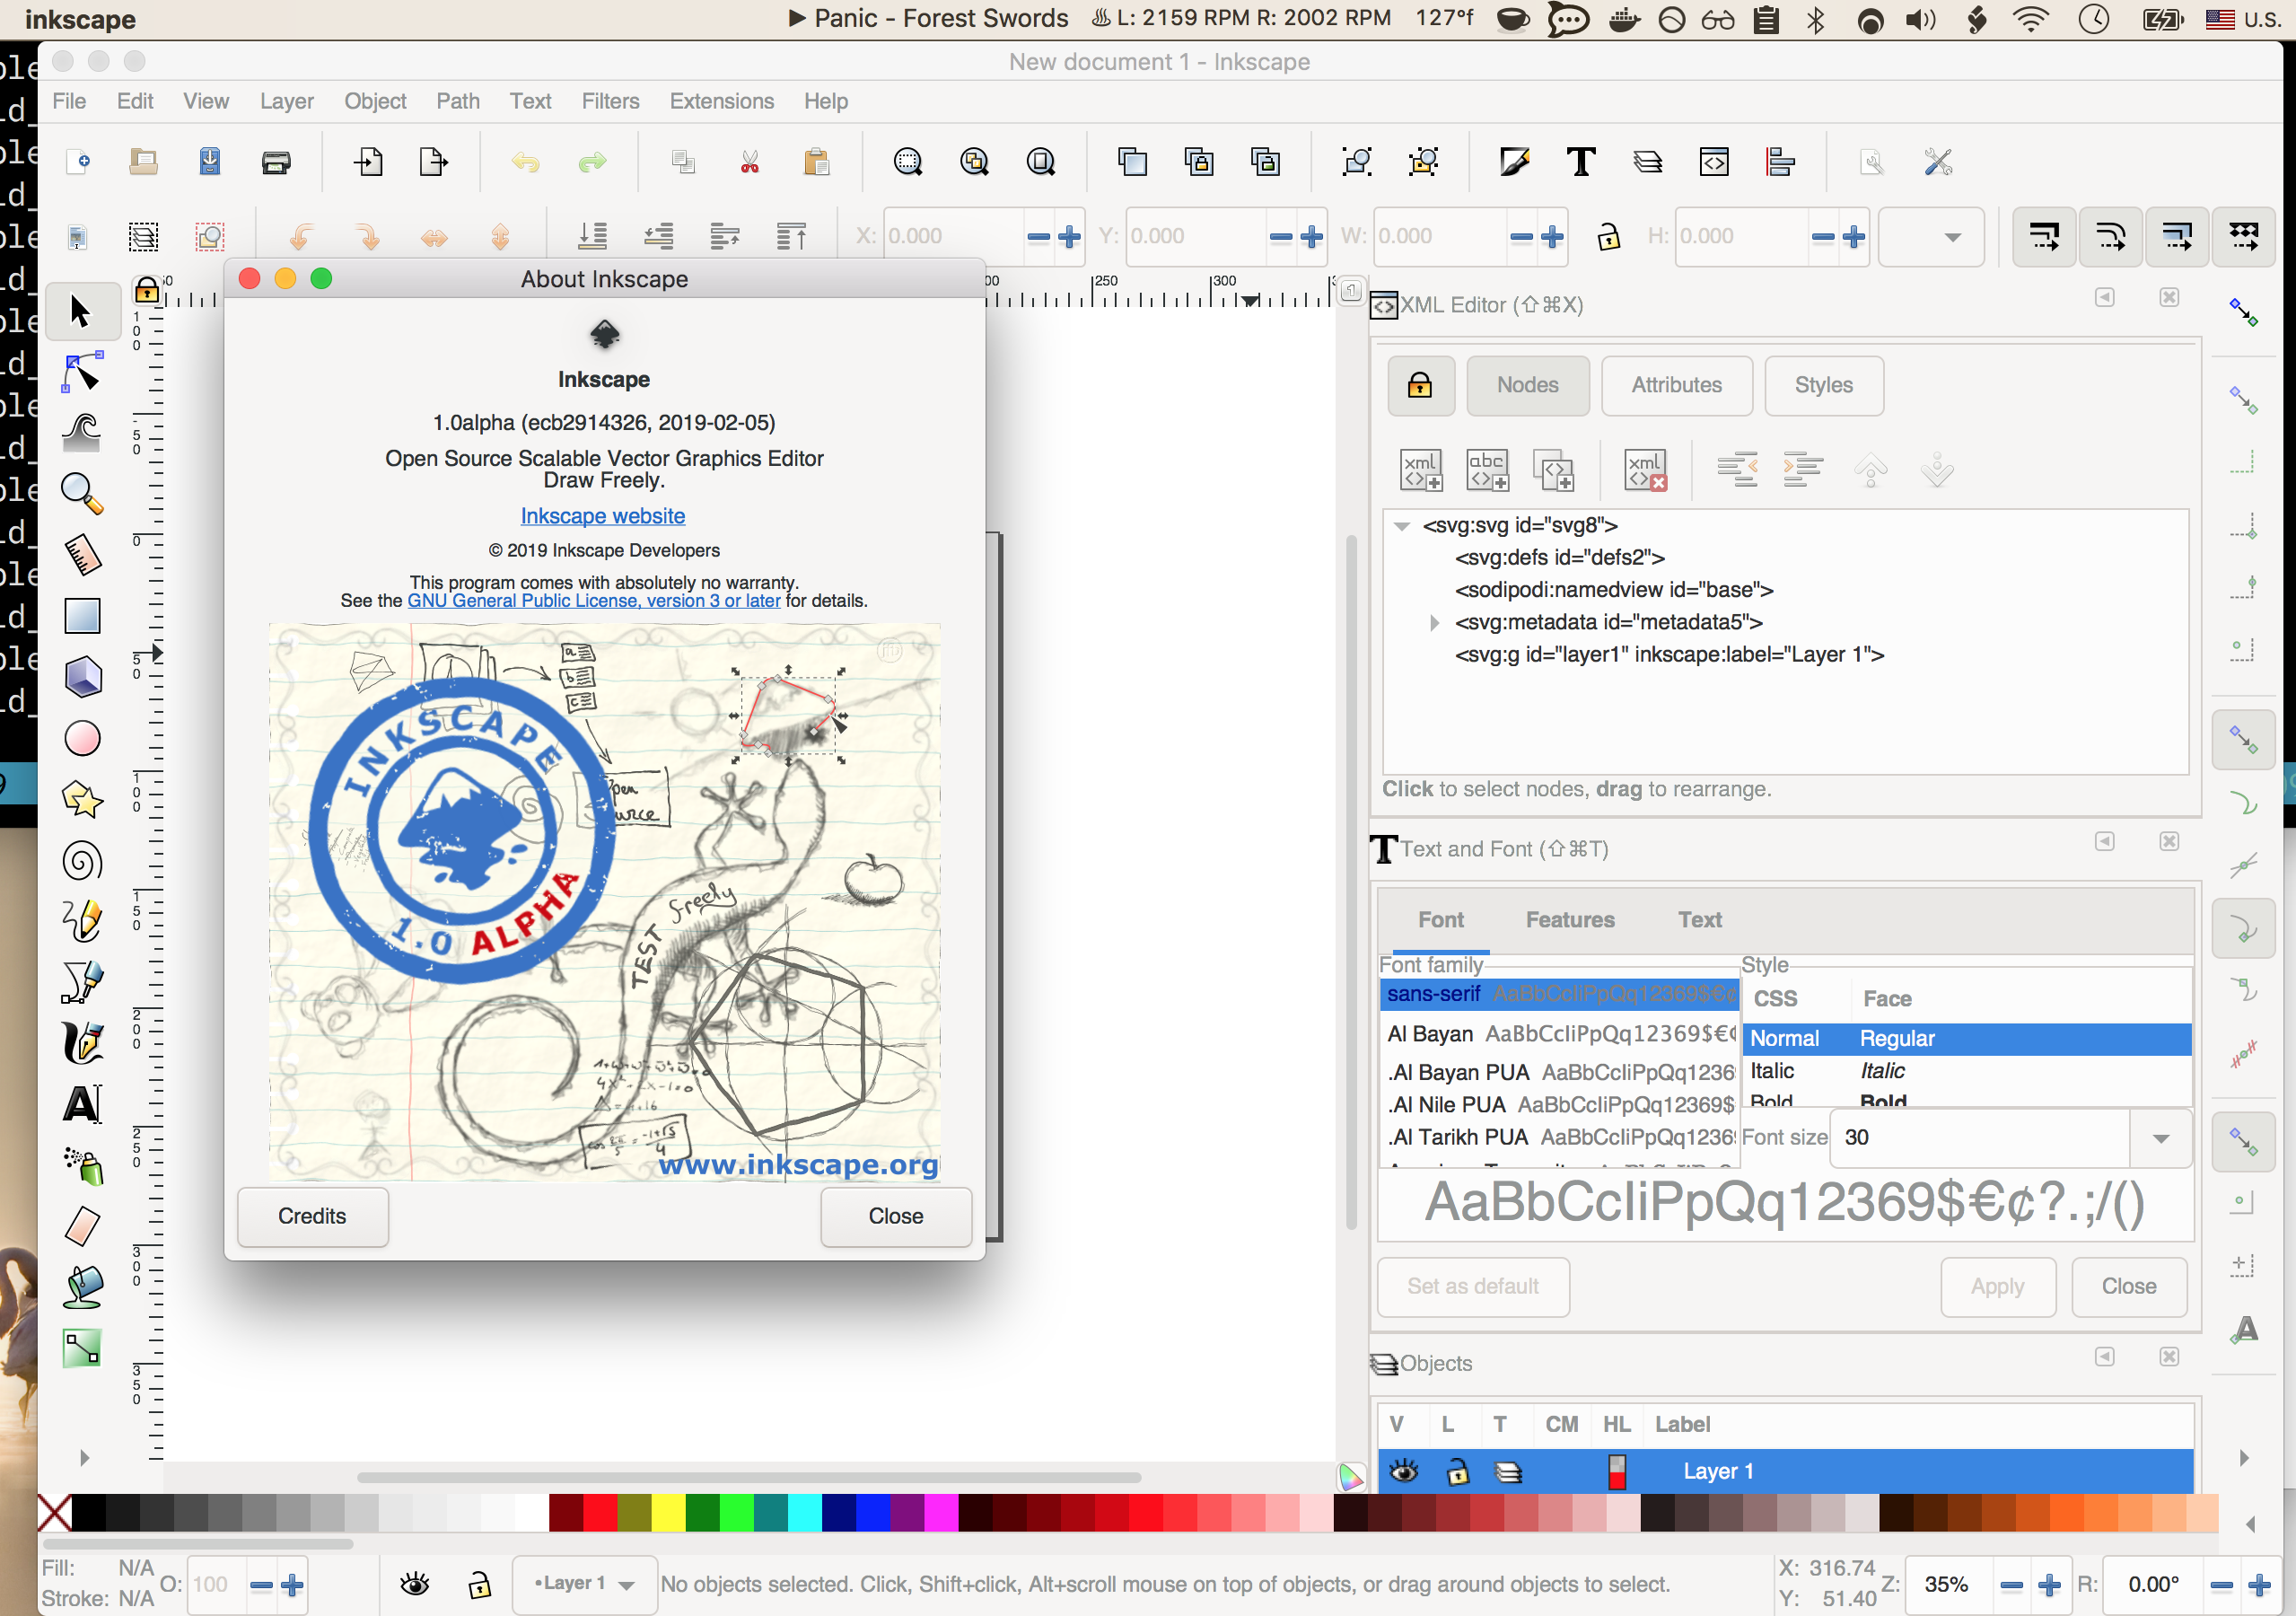 homebrew-us-05/inkscape-building-for-macOS md at master · ipatch